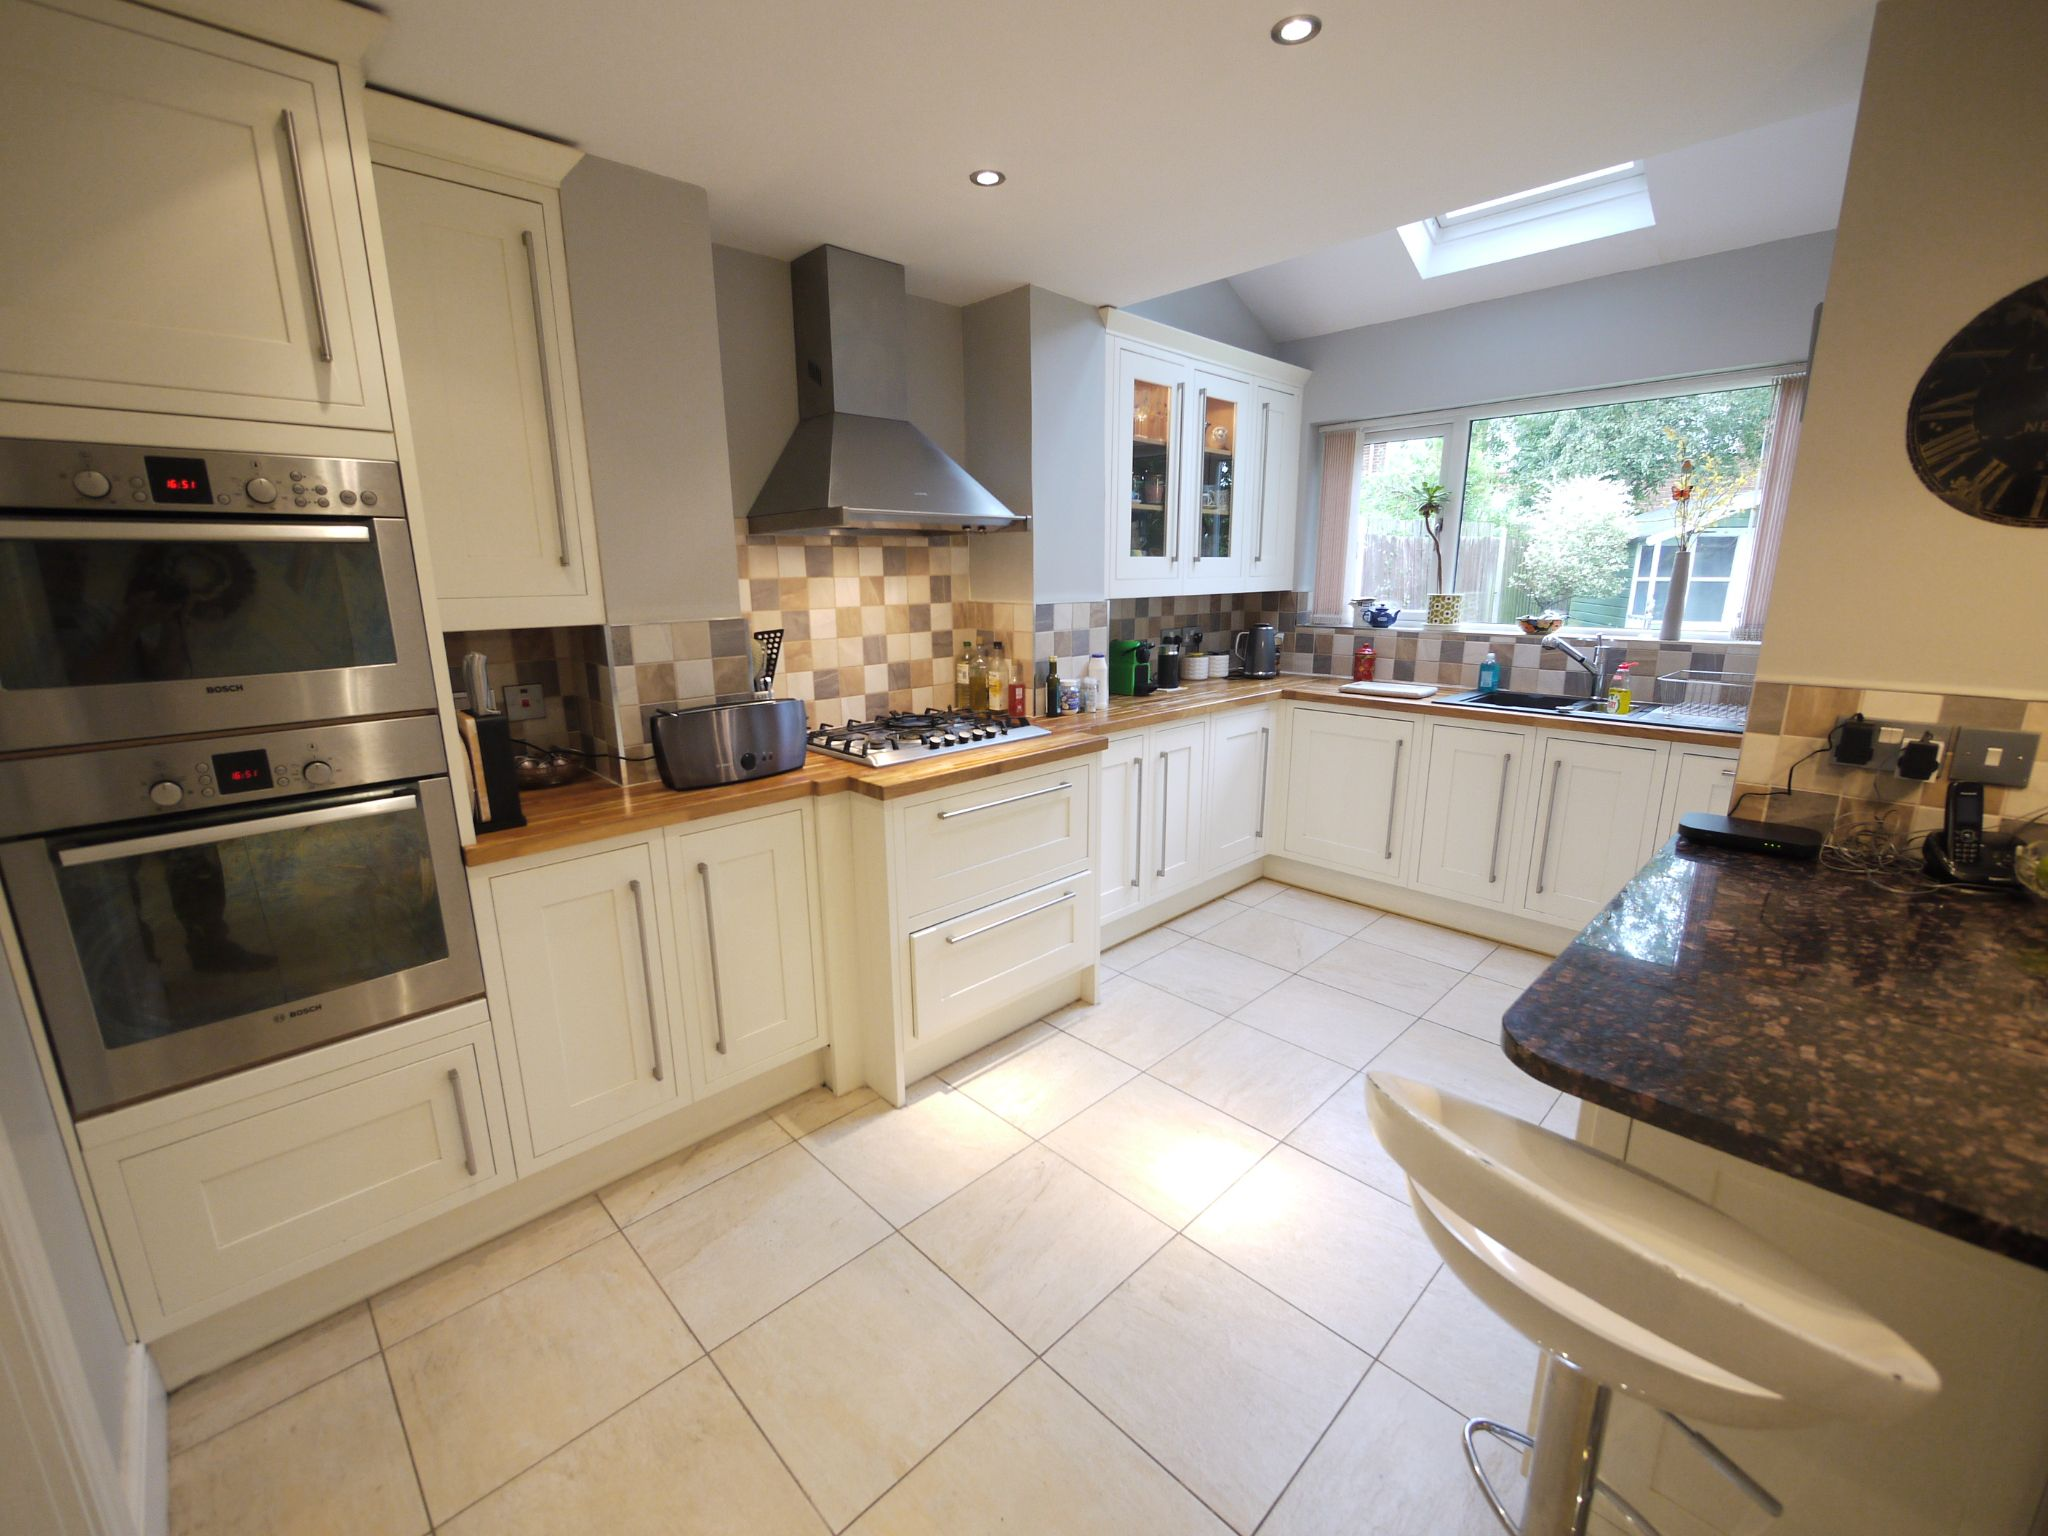 6 bedroom detached house SSTC in Halifax - dining kit 3.